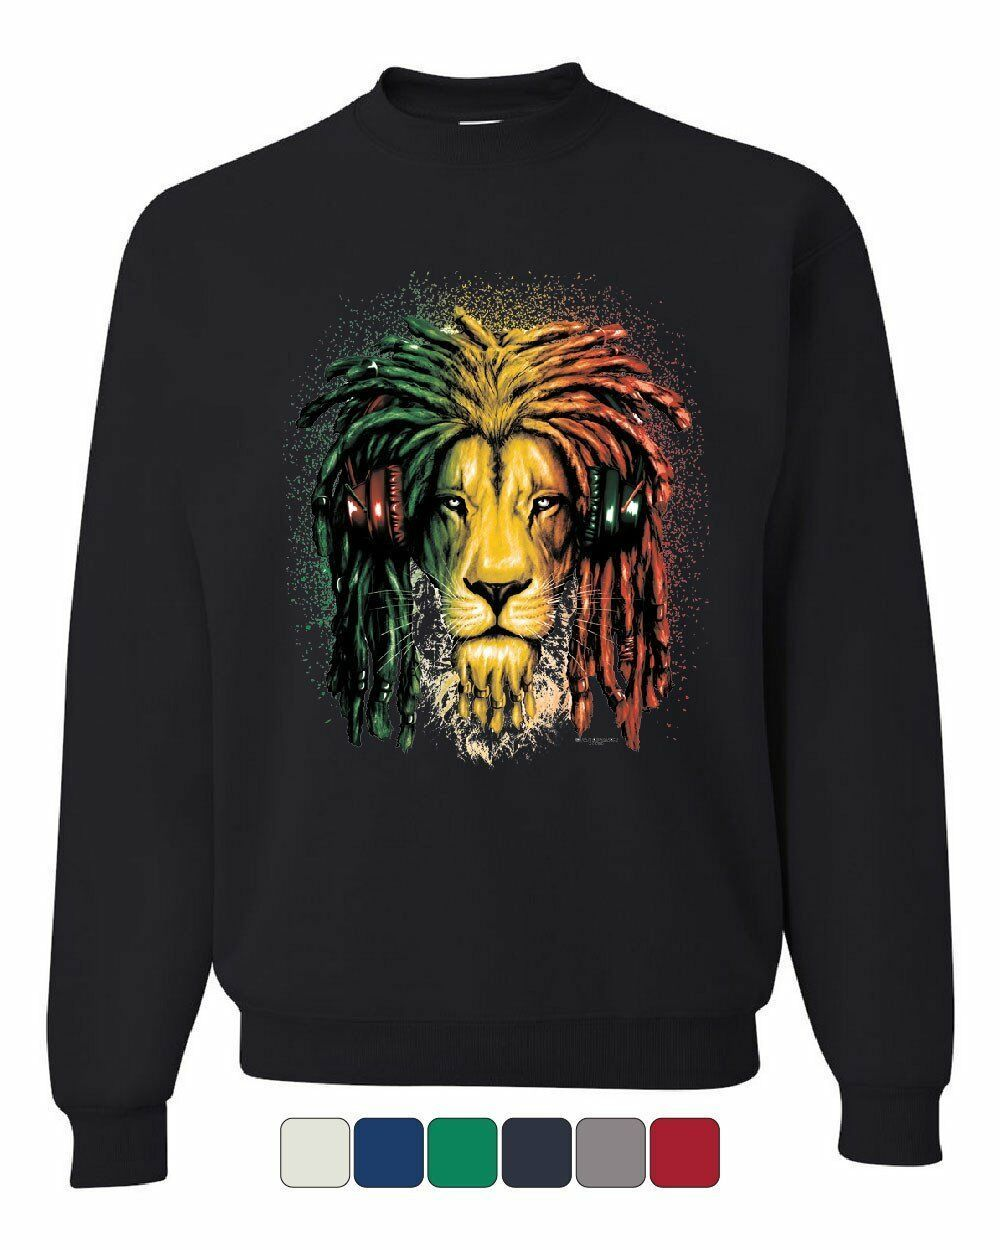 Rasta Lion with Headphones Sweatshirt  Reggae Smoking Jamaica 420 - $14.32 - $27.99